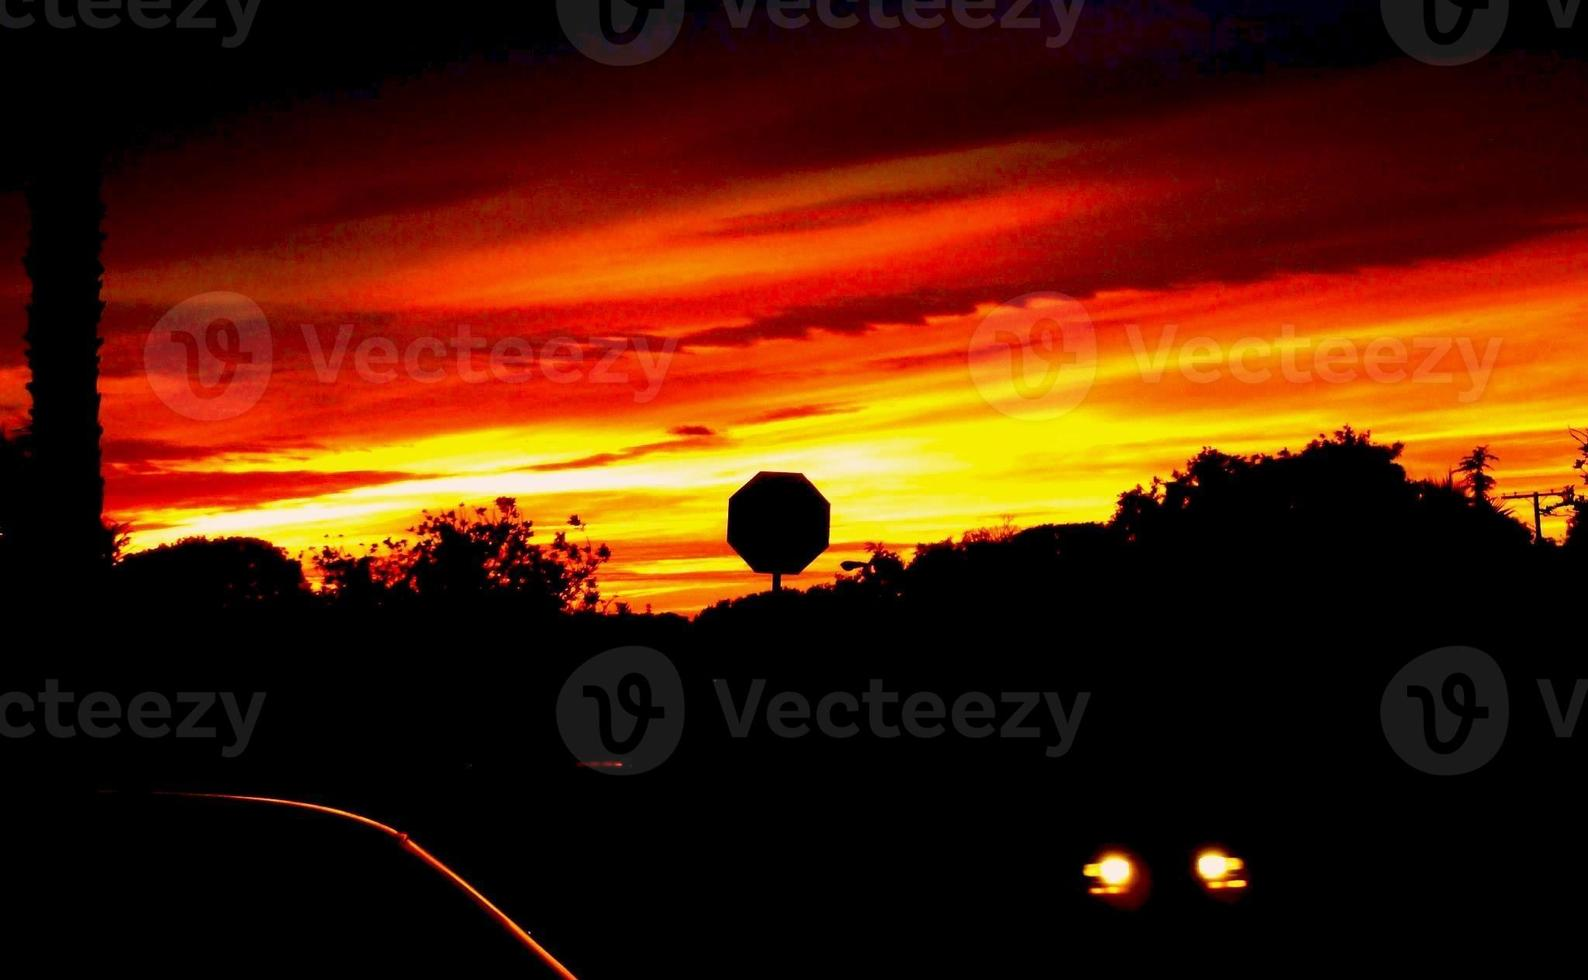 Sunset with stop sign silhouetted against fire red sky photo